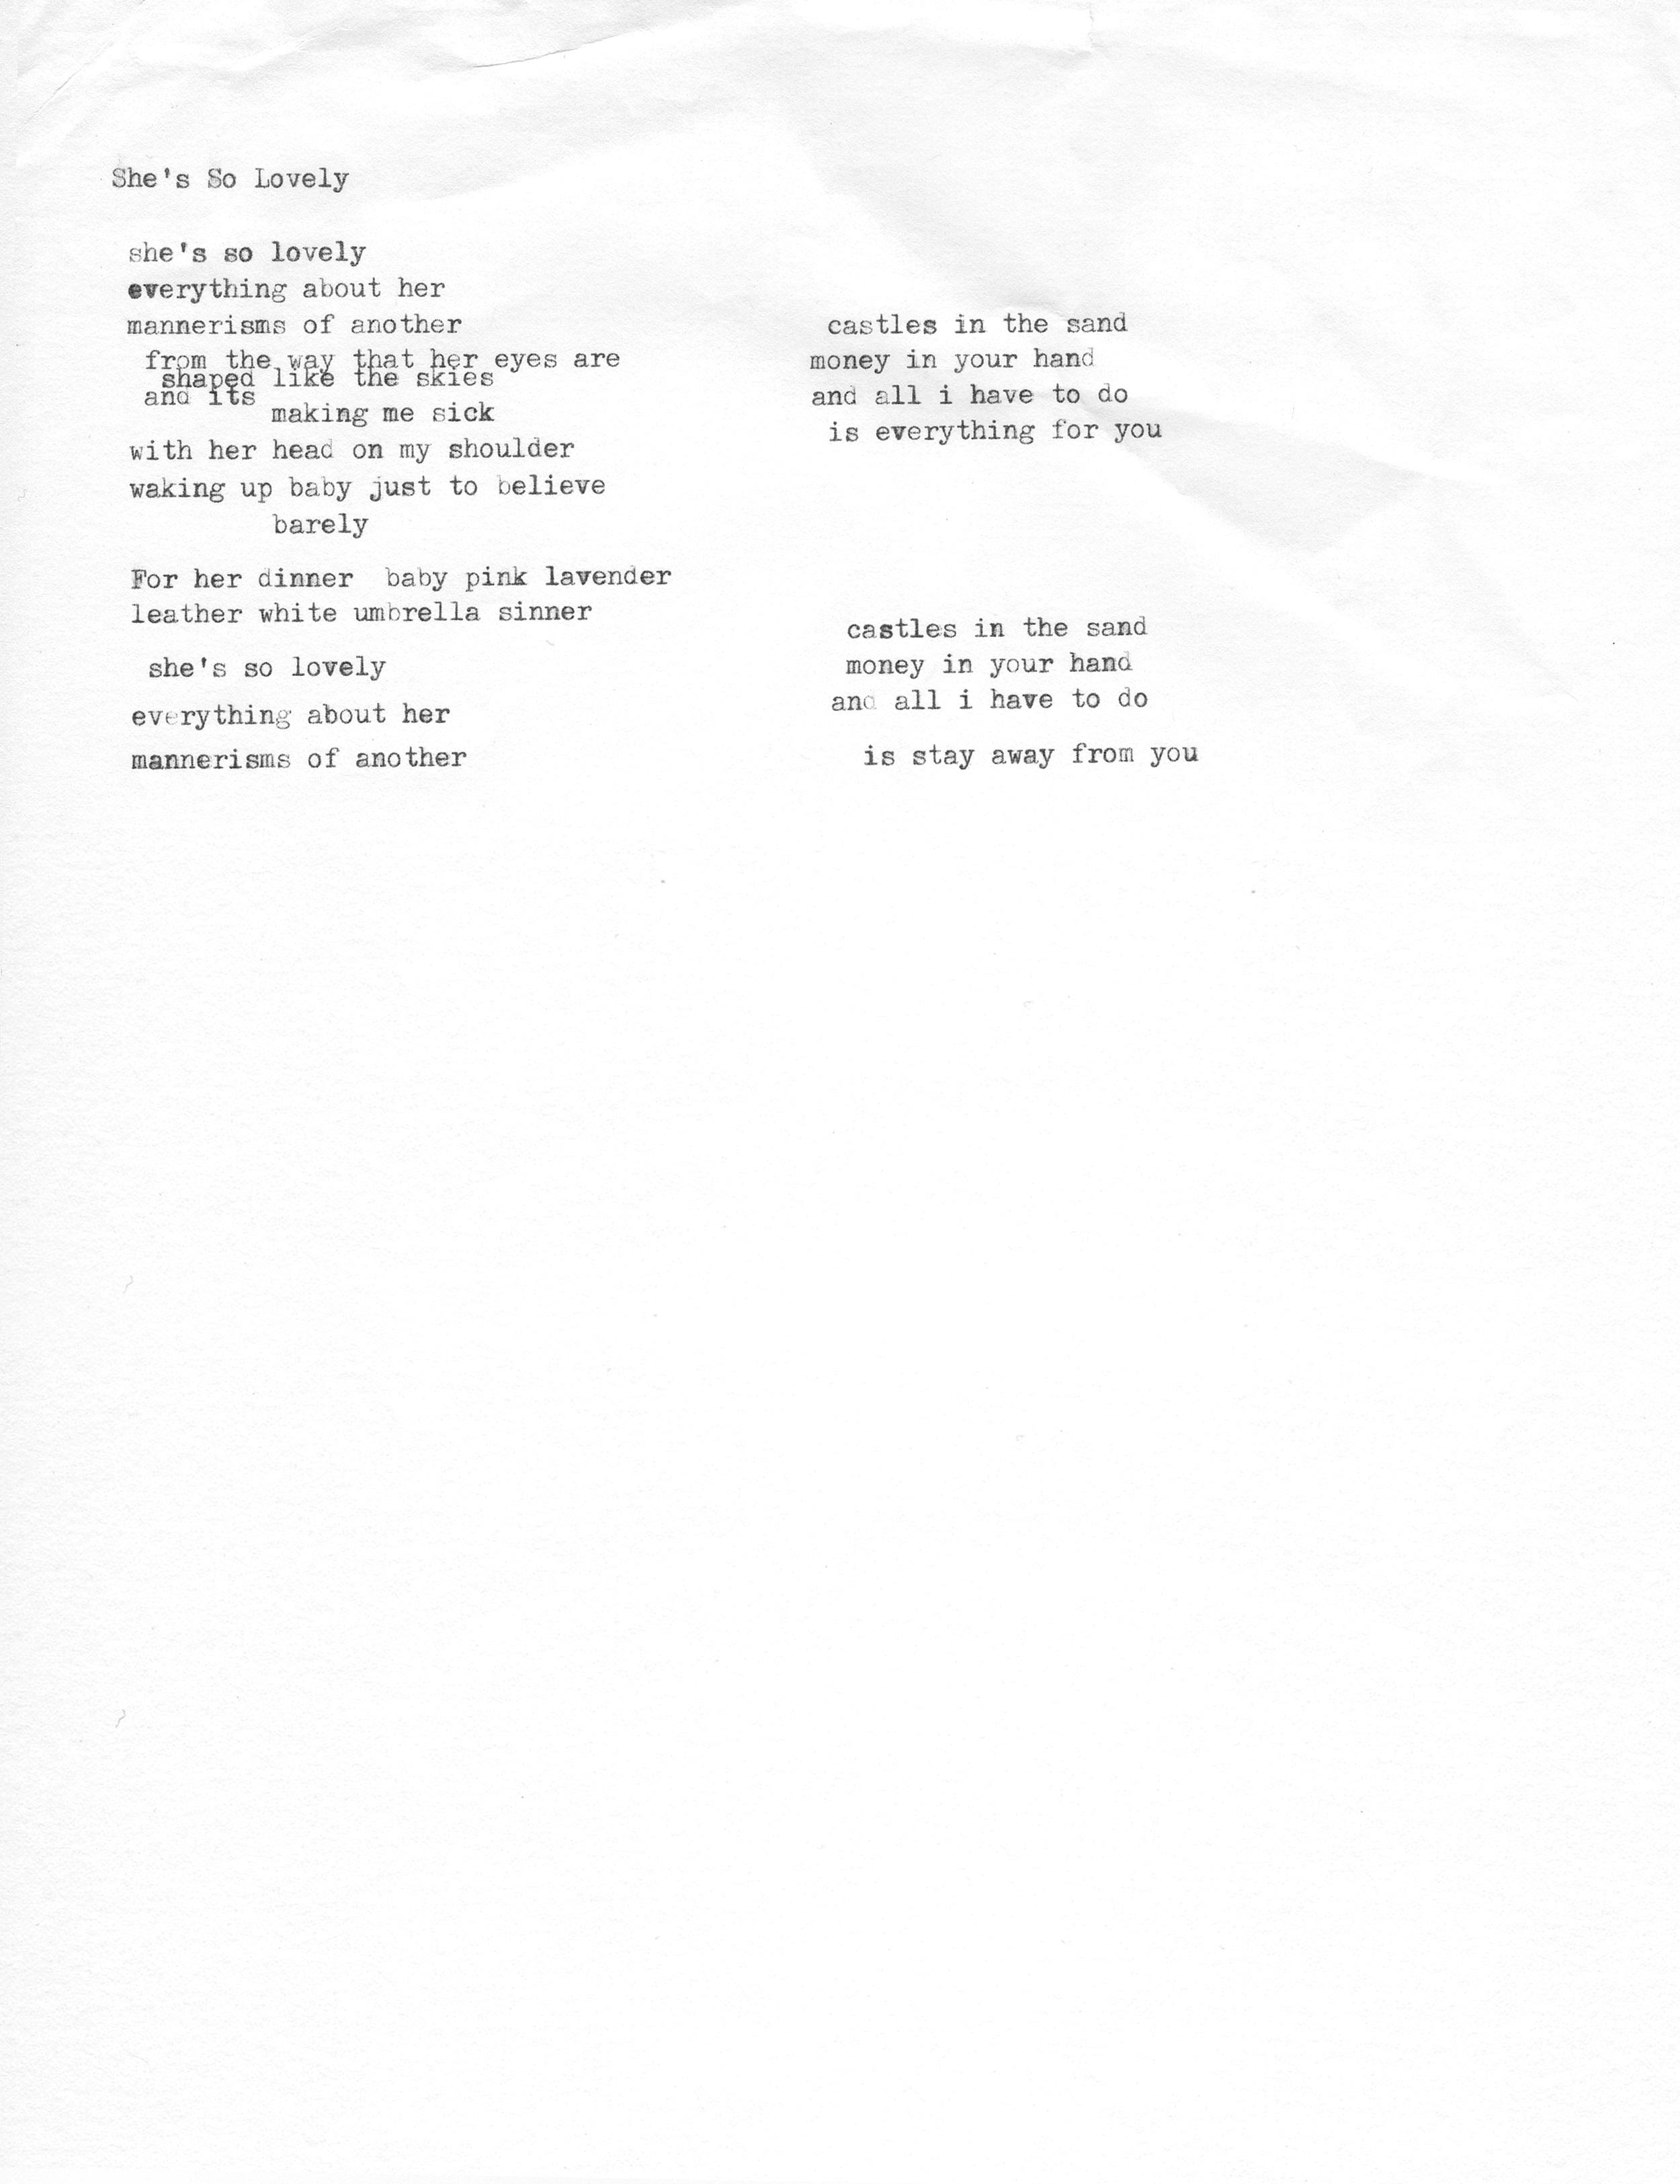 Lyrics on depression cherry site point to different songs ...